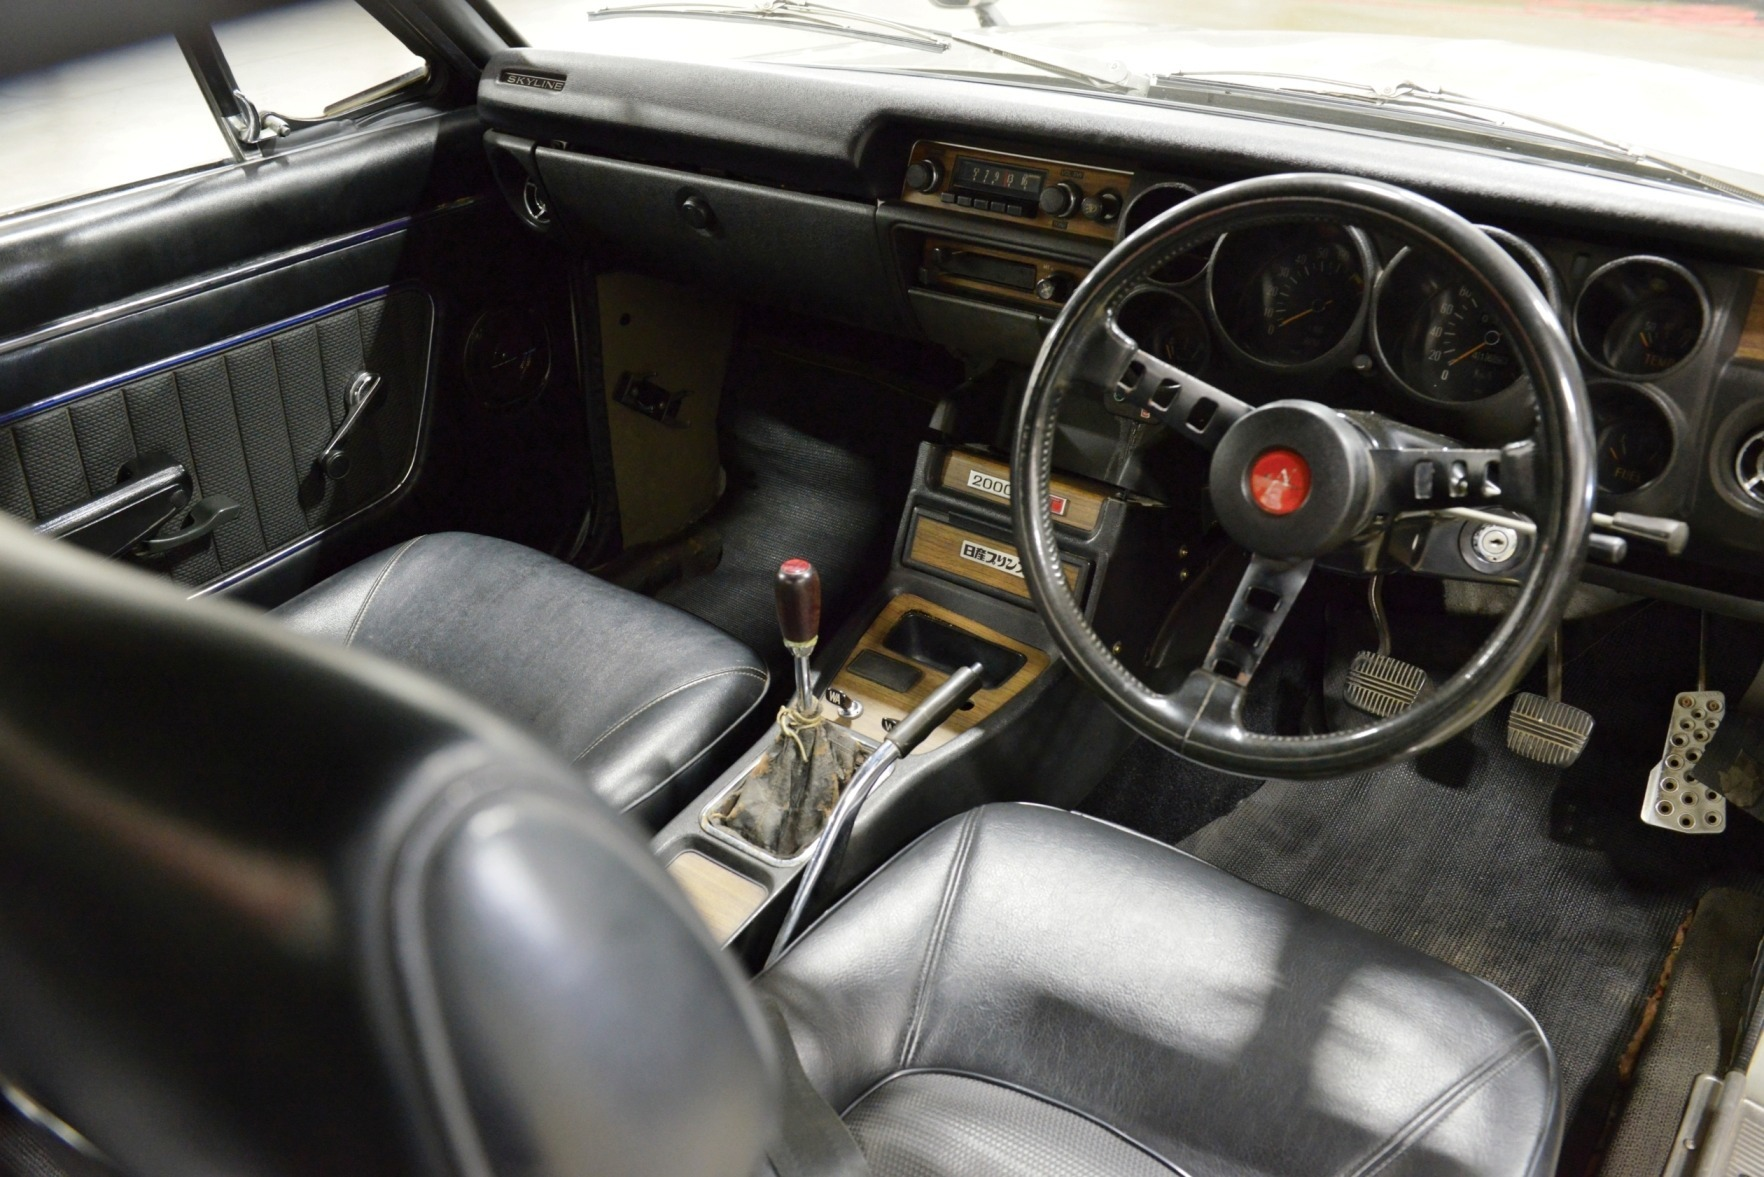 RM Monterey 2014 Preview - 1972 Nissan Skyline HT 2000 GT-R